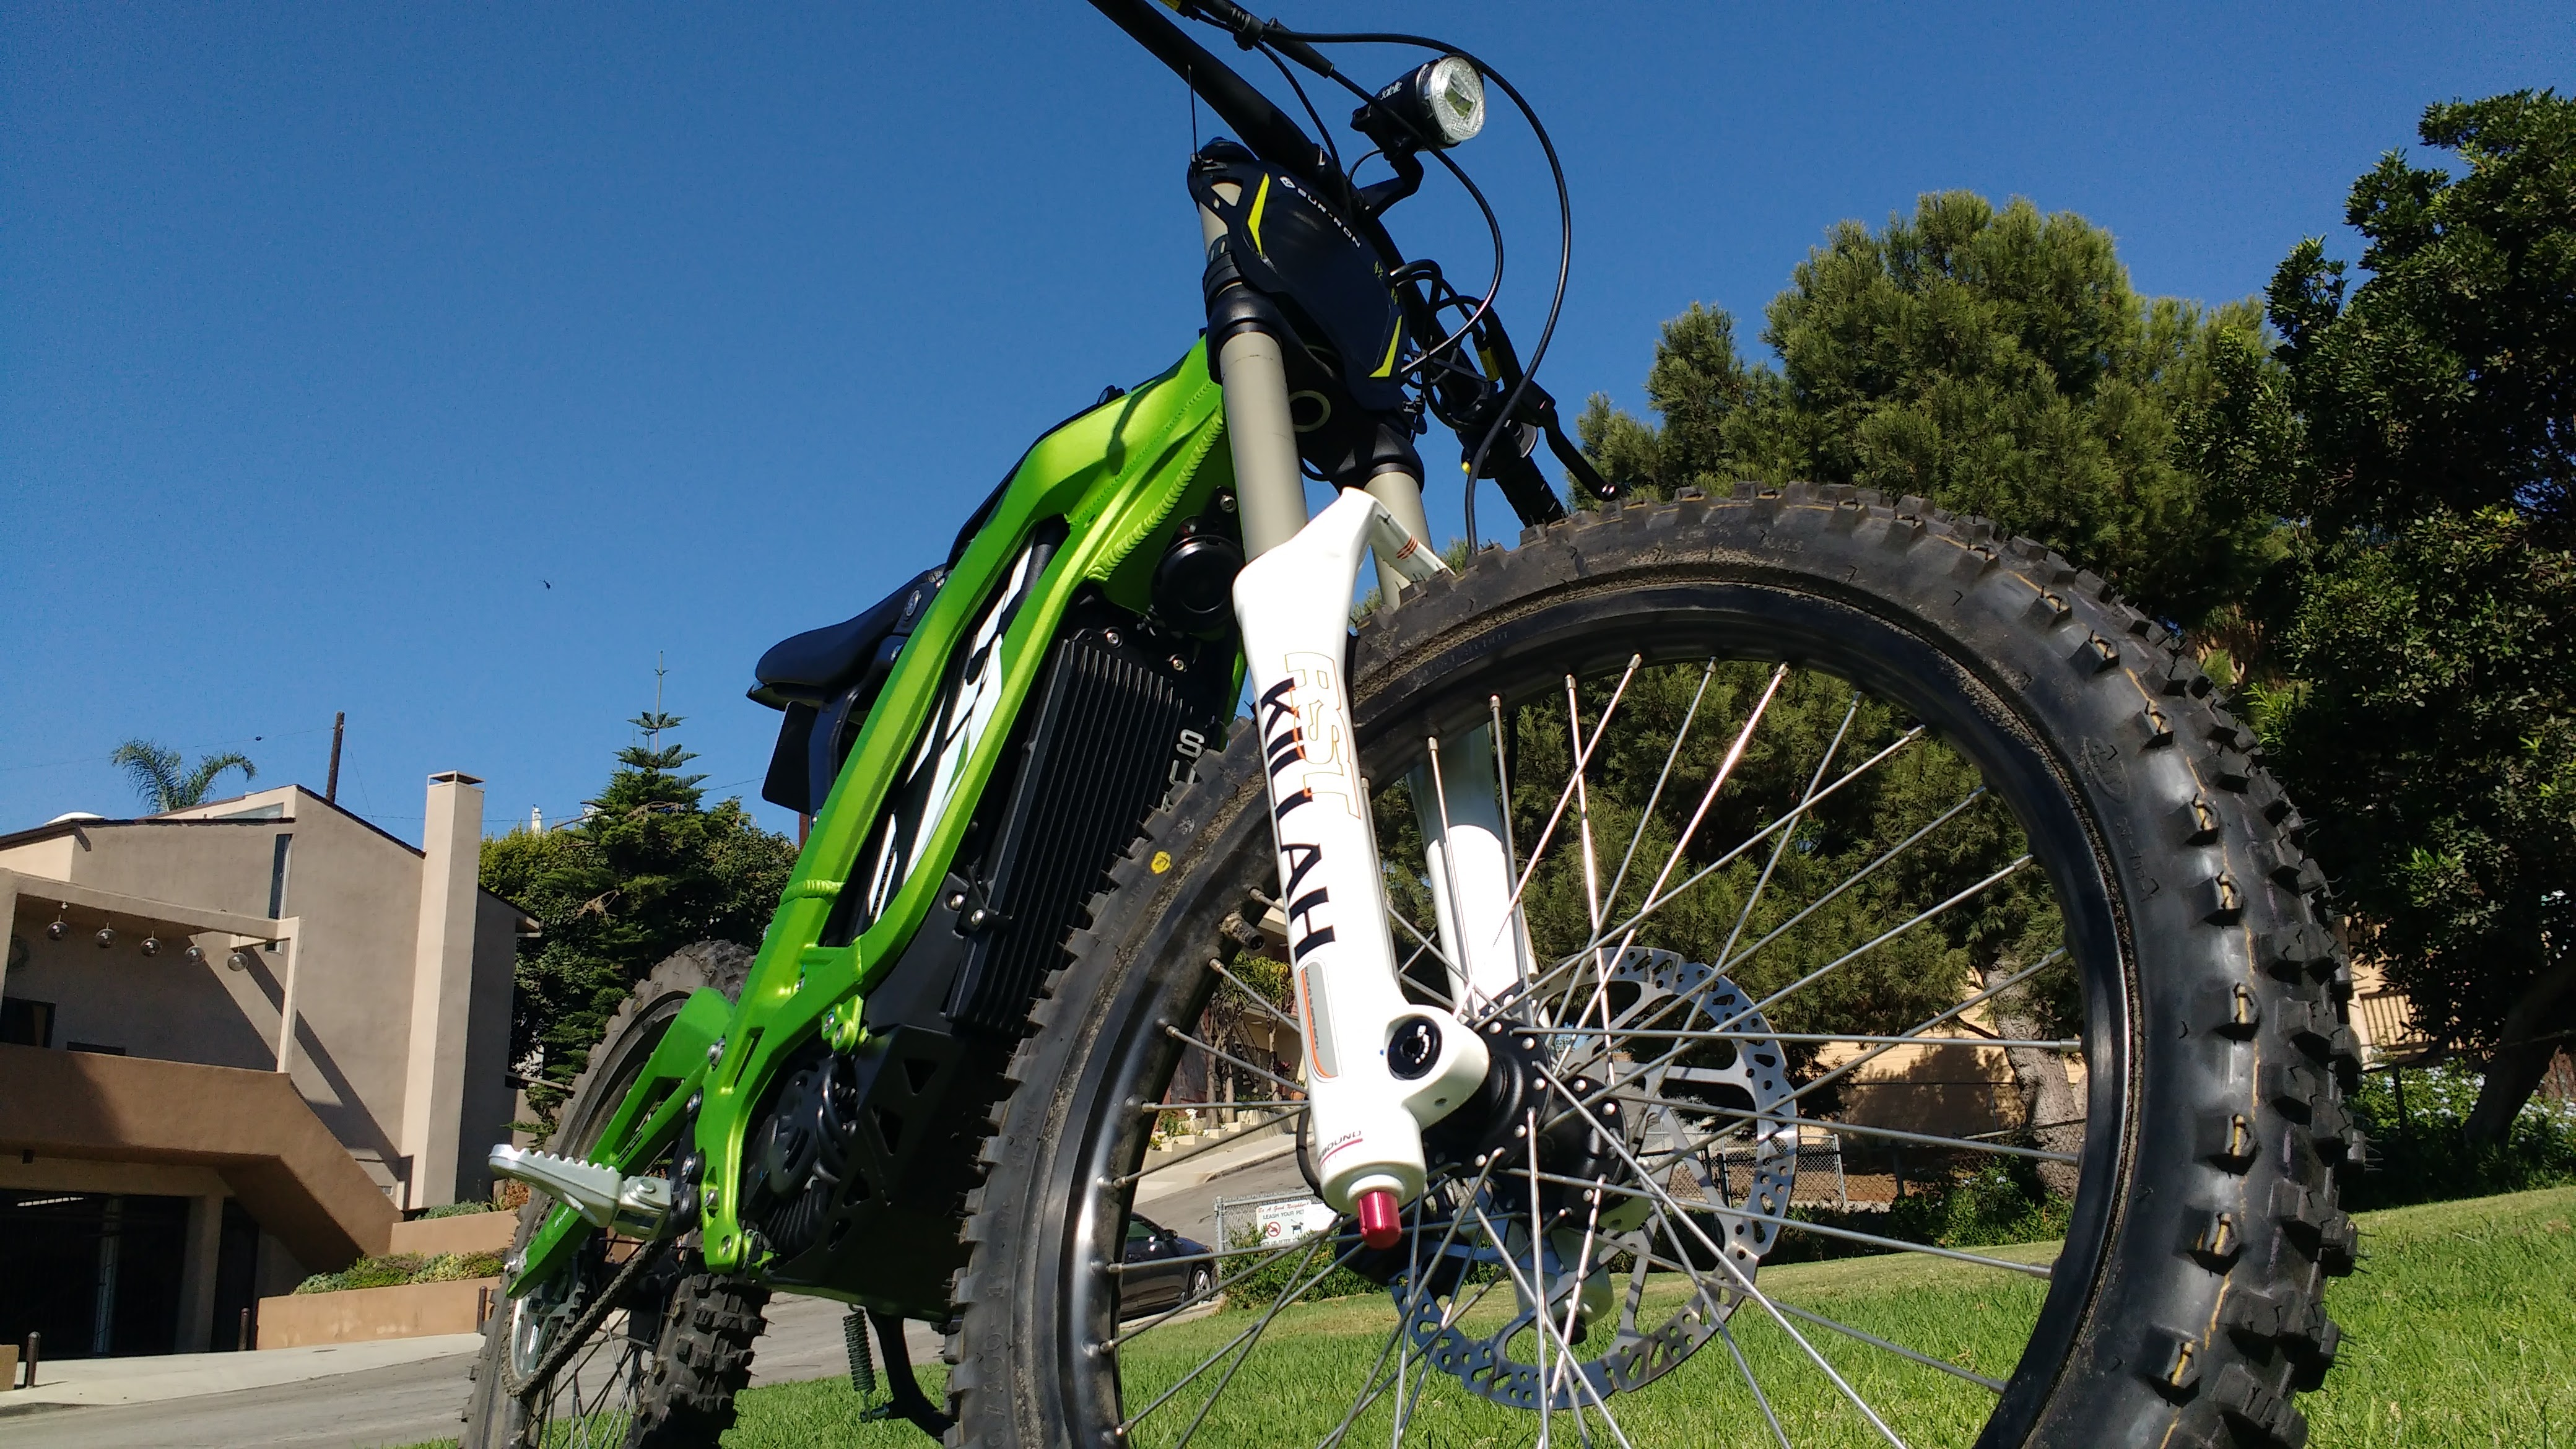 The New Age Of Affordable Electric Motorcross : The Sur-Ron